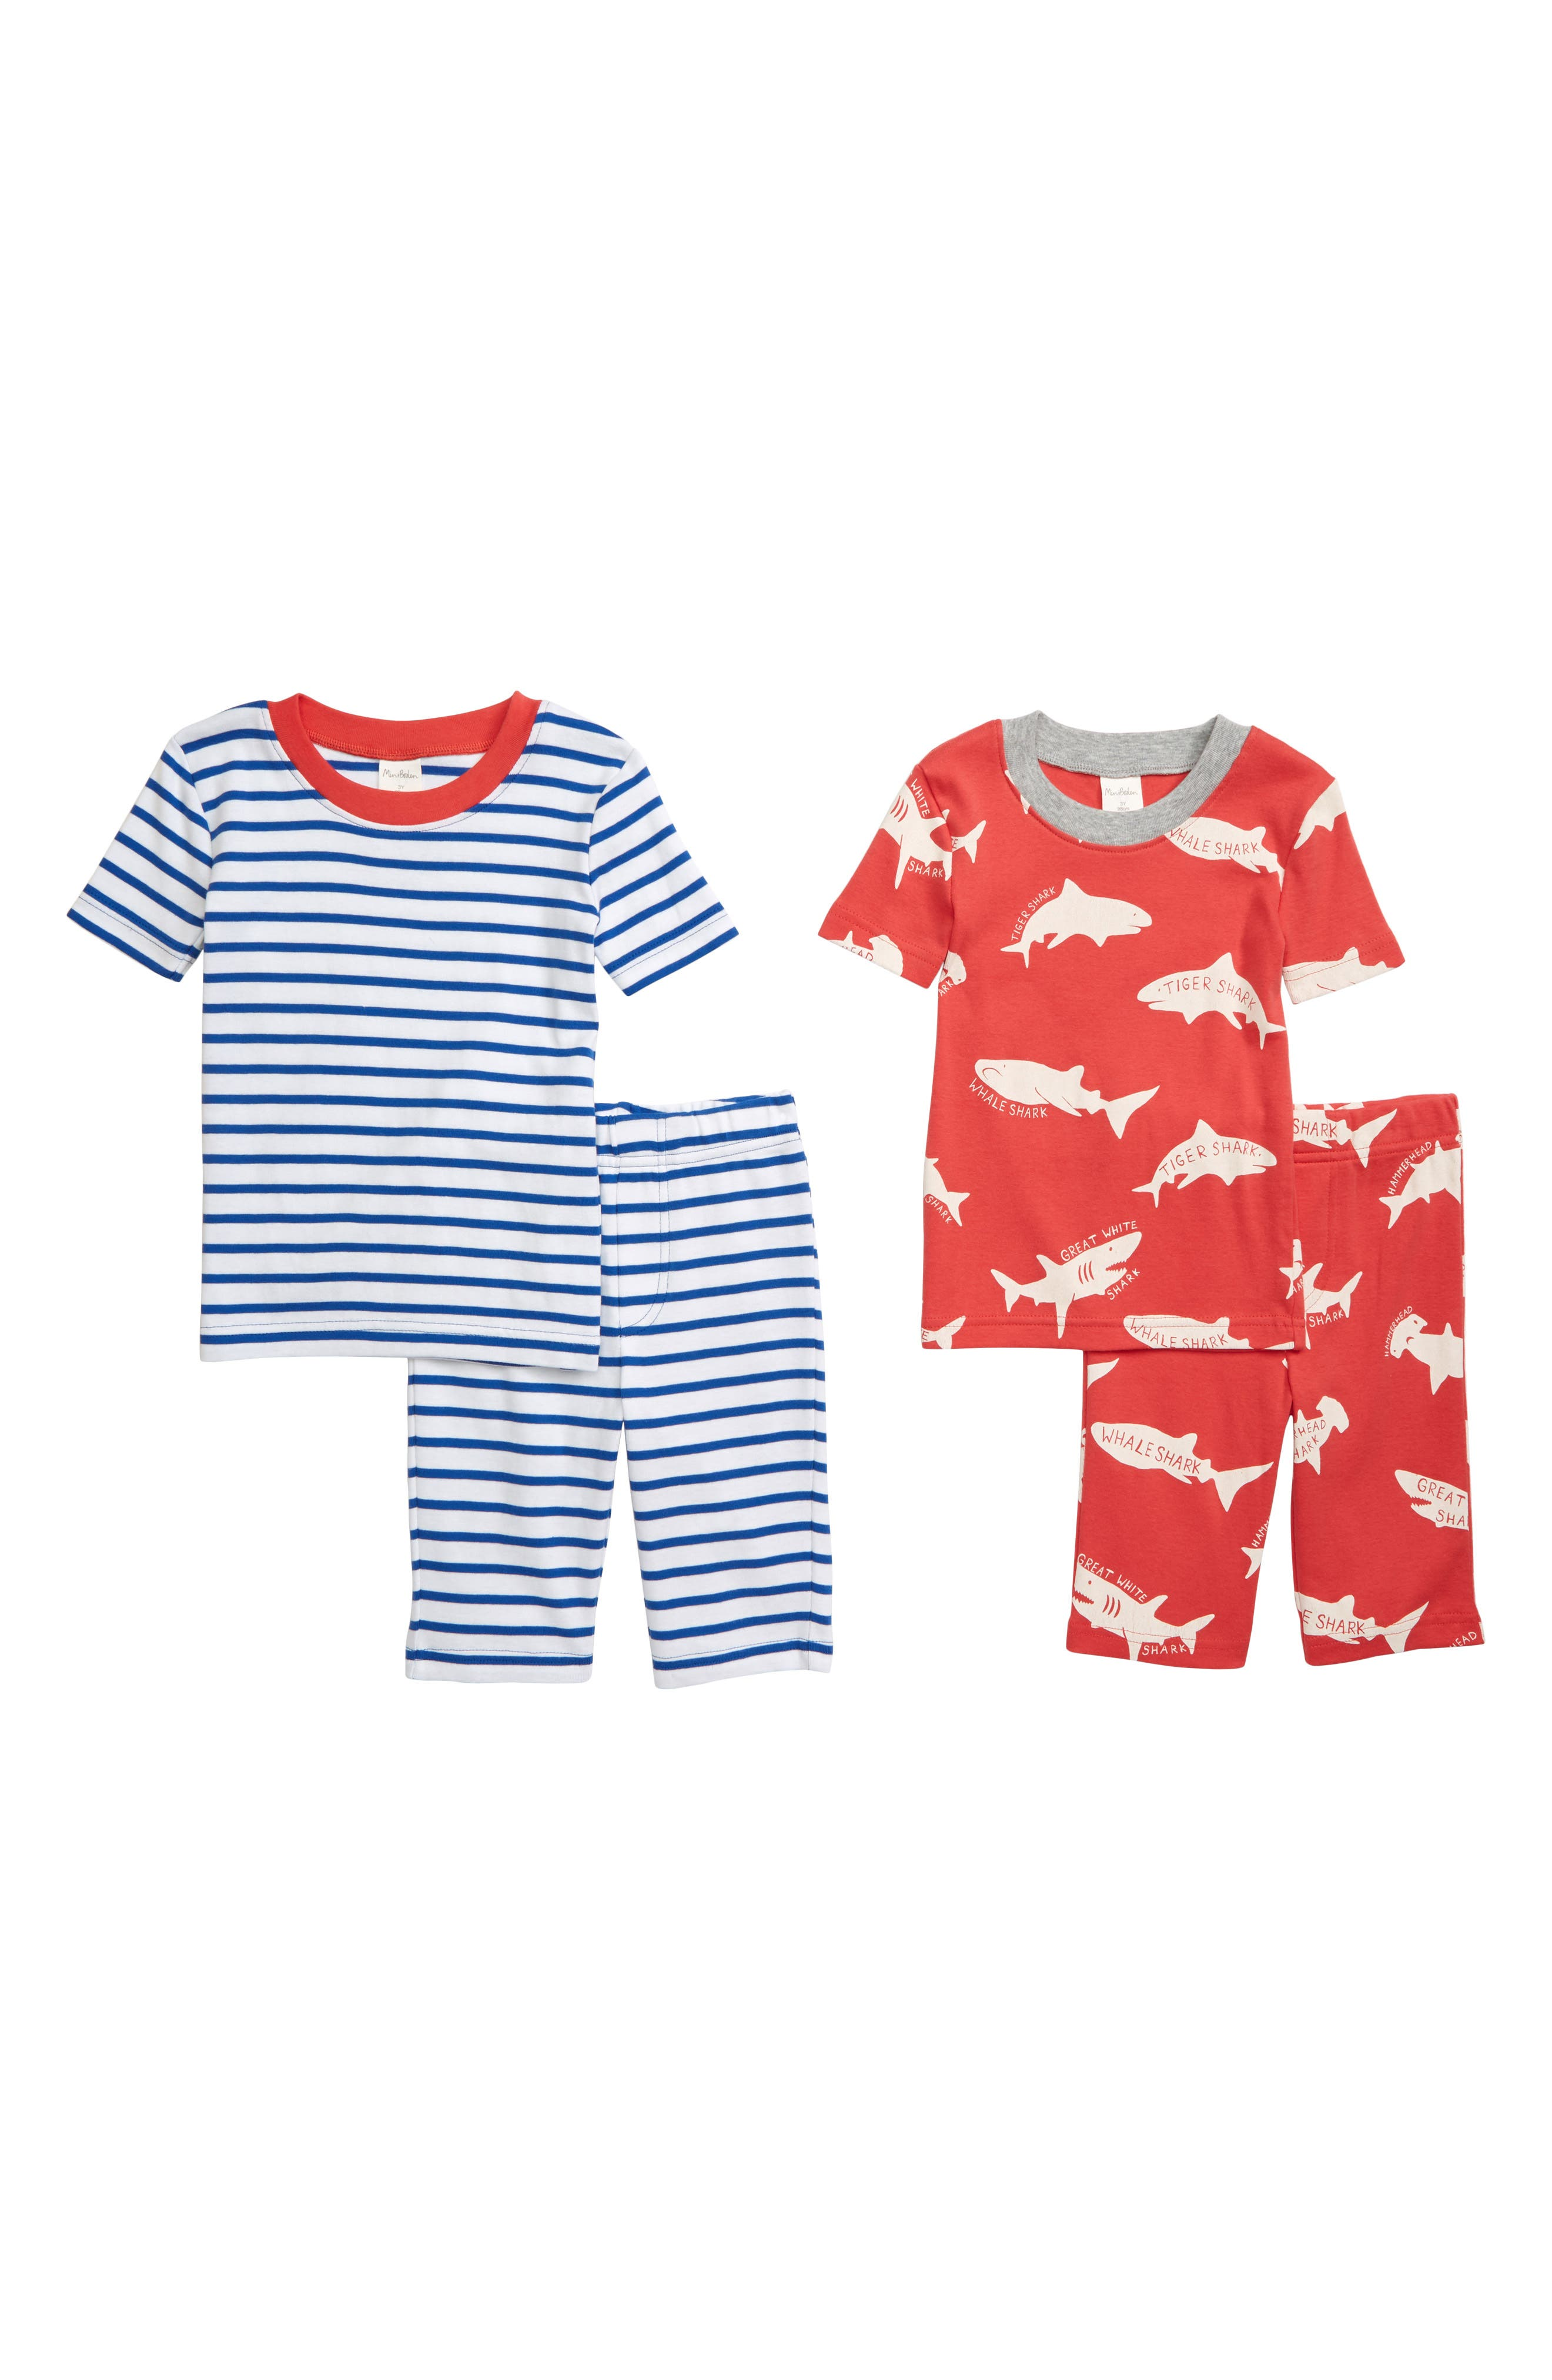 Boys Mini Boden 2Pack Fitted TwoPiece Short Pajamas Size 10Y  Red